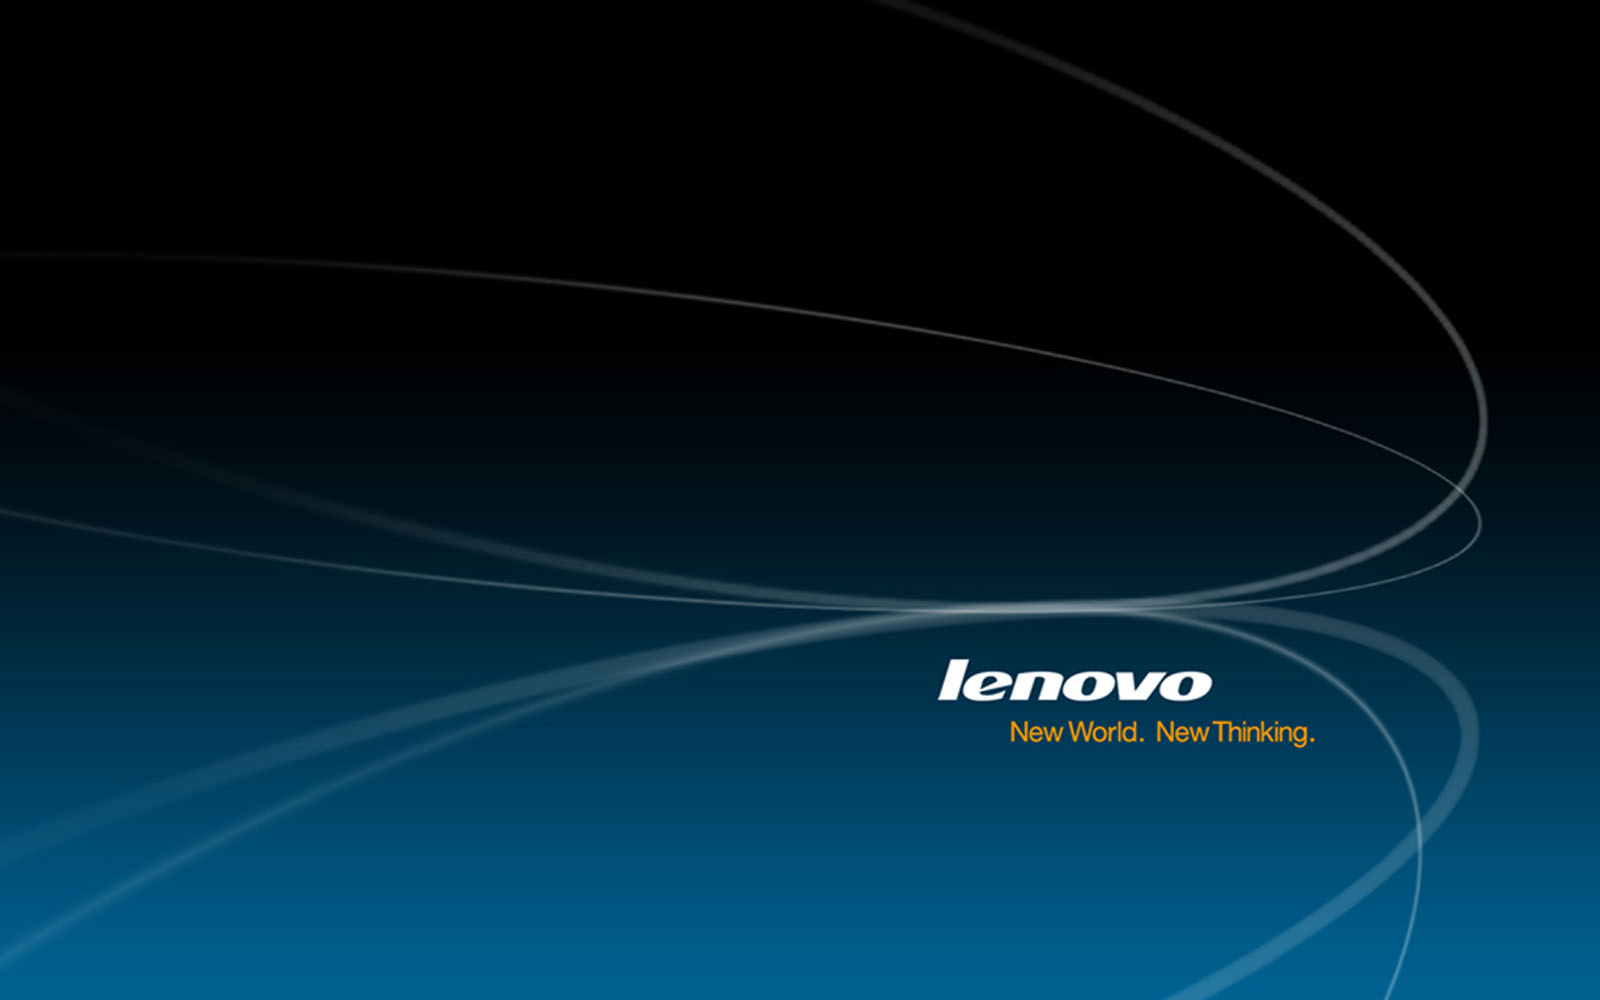 Wallpapers Lenovo Laptop Wallpapers